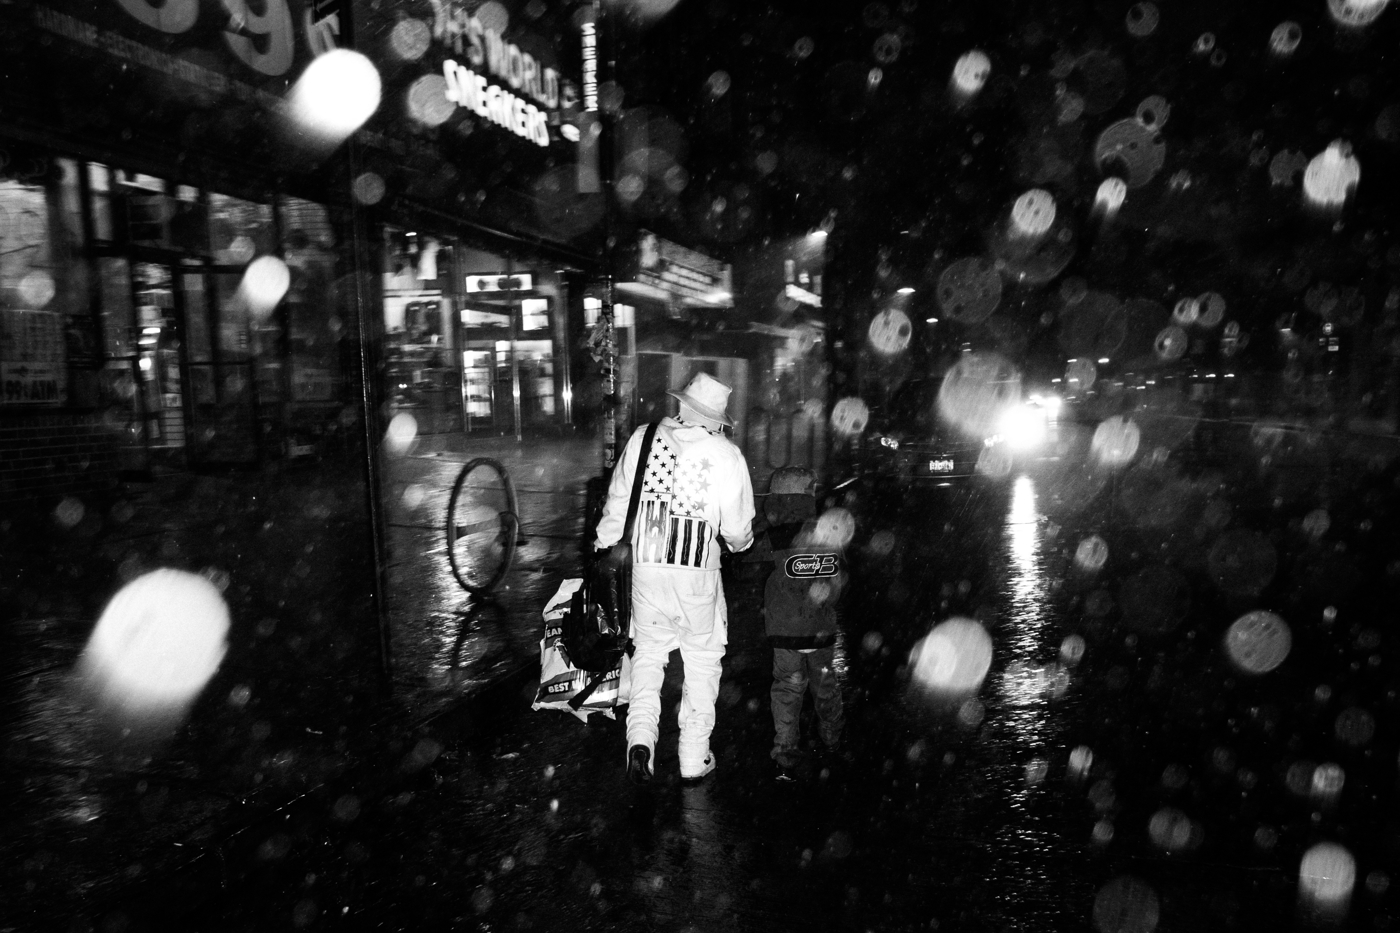 A man walks with a child down Broadway through a springtime rainstorm in Bushwick. This section of Broadway, from here to a few blocks further south, saw four shootings in one week, which one NYPD officer said was likely related to gang initiations and retaliations.